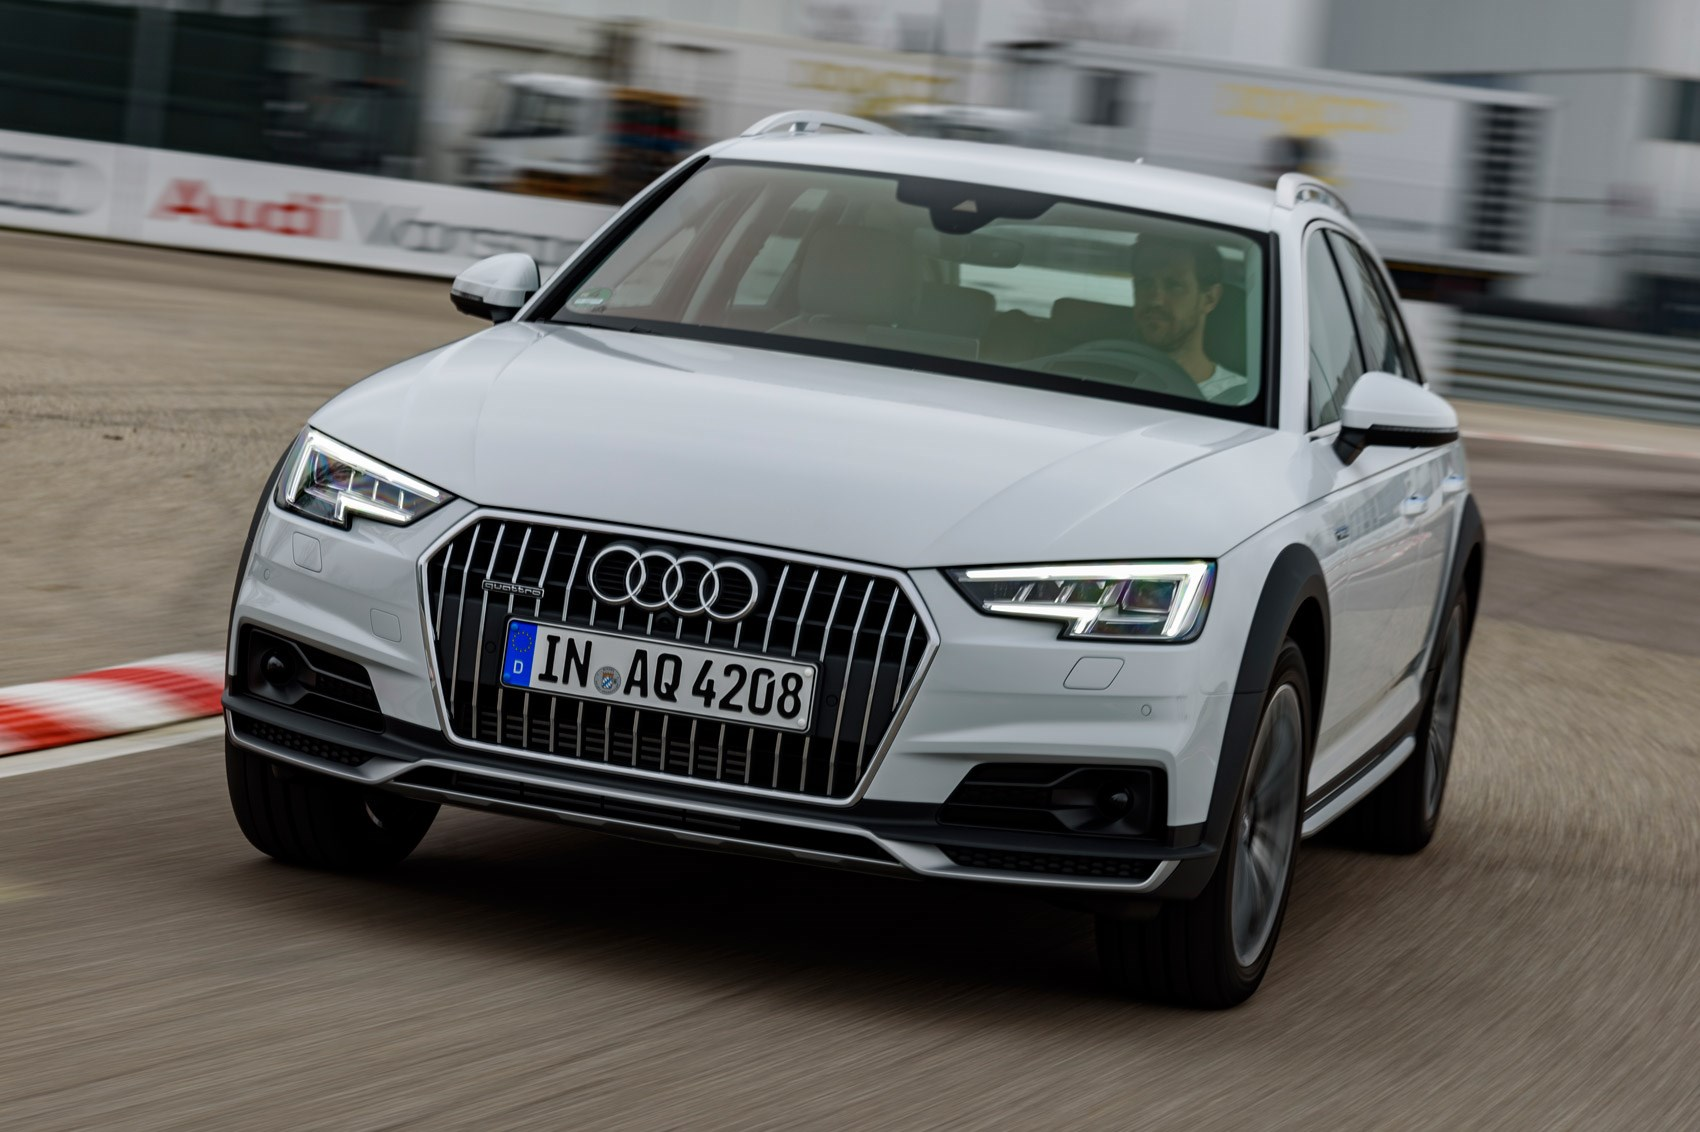 Audi RS Avant Review Specs Prices Onsale Dates - Audi various models